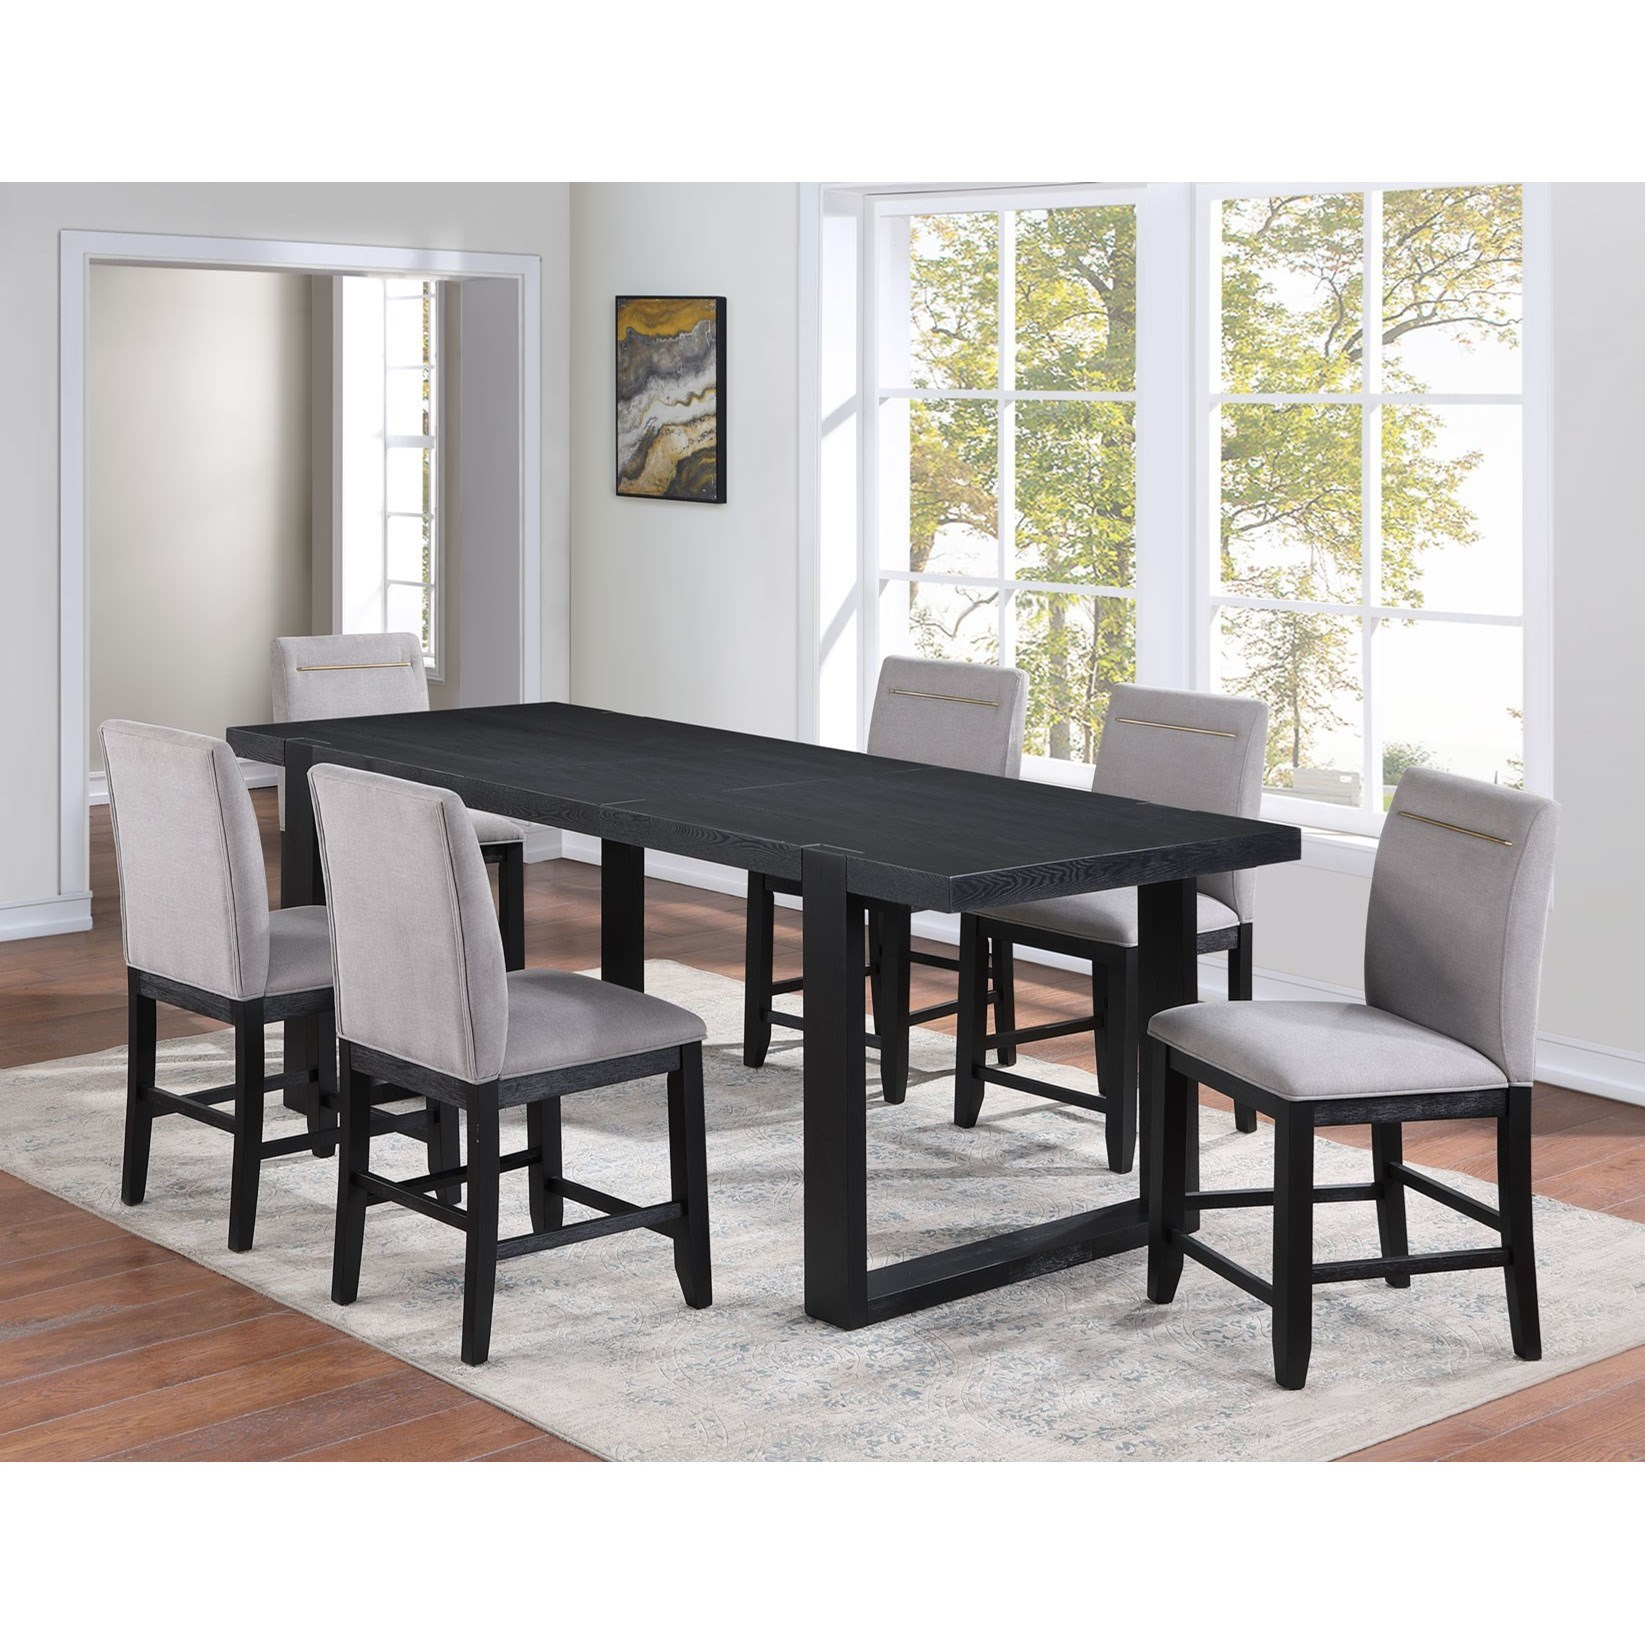 Yves 7-Piece Pub Table Set by Steve Silver at Northeast Factory Direct